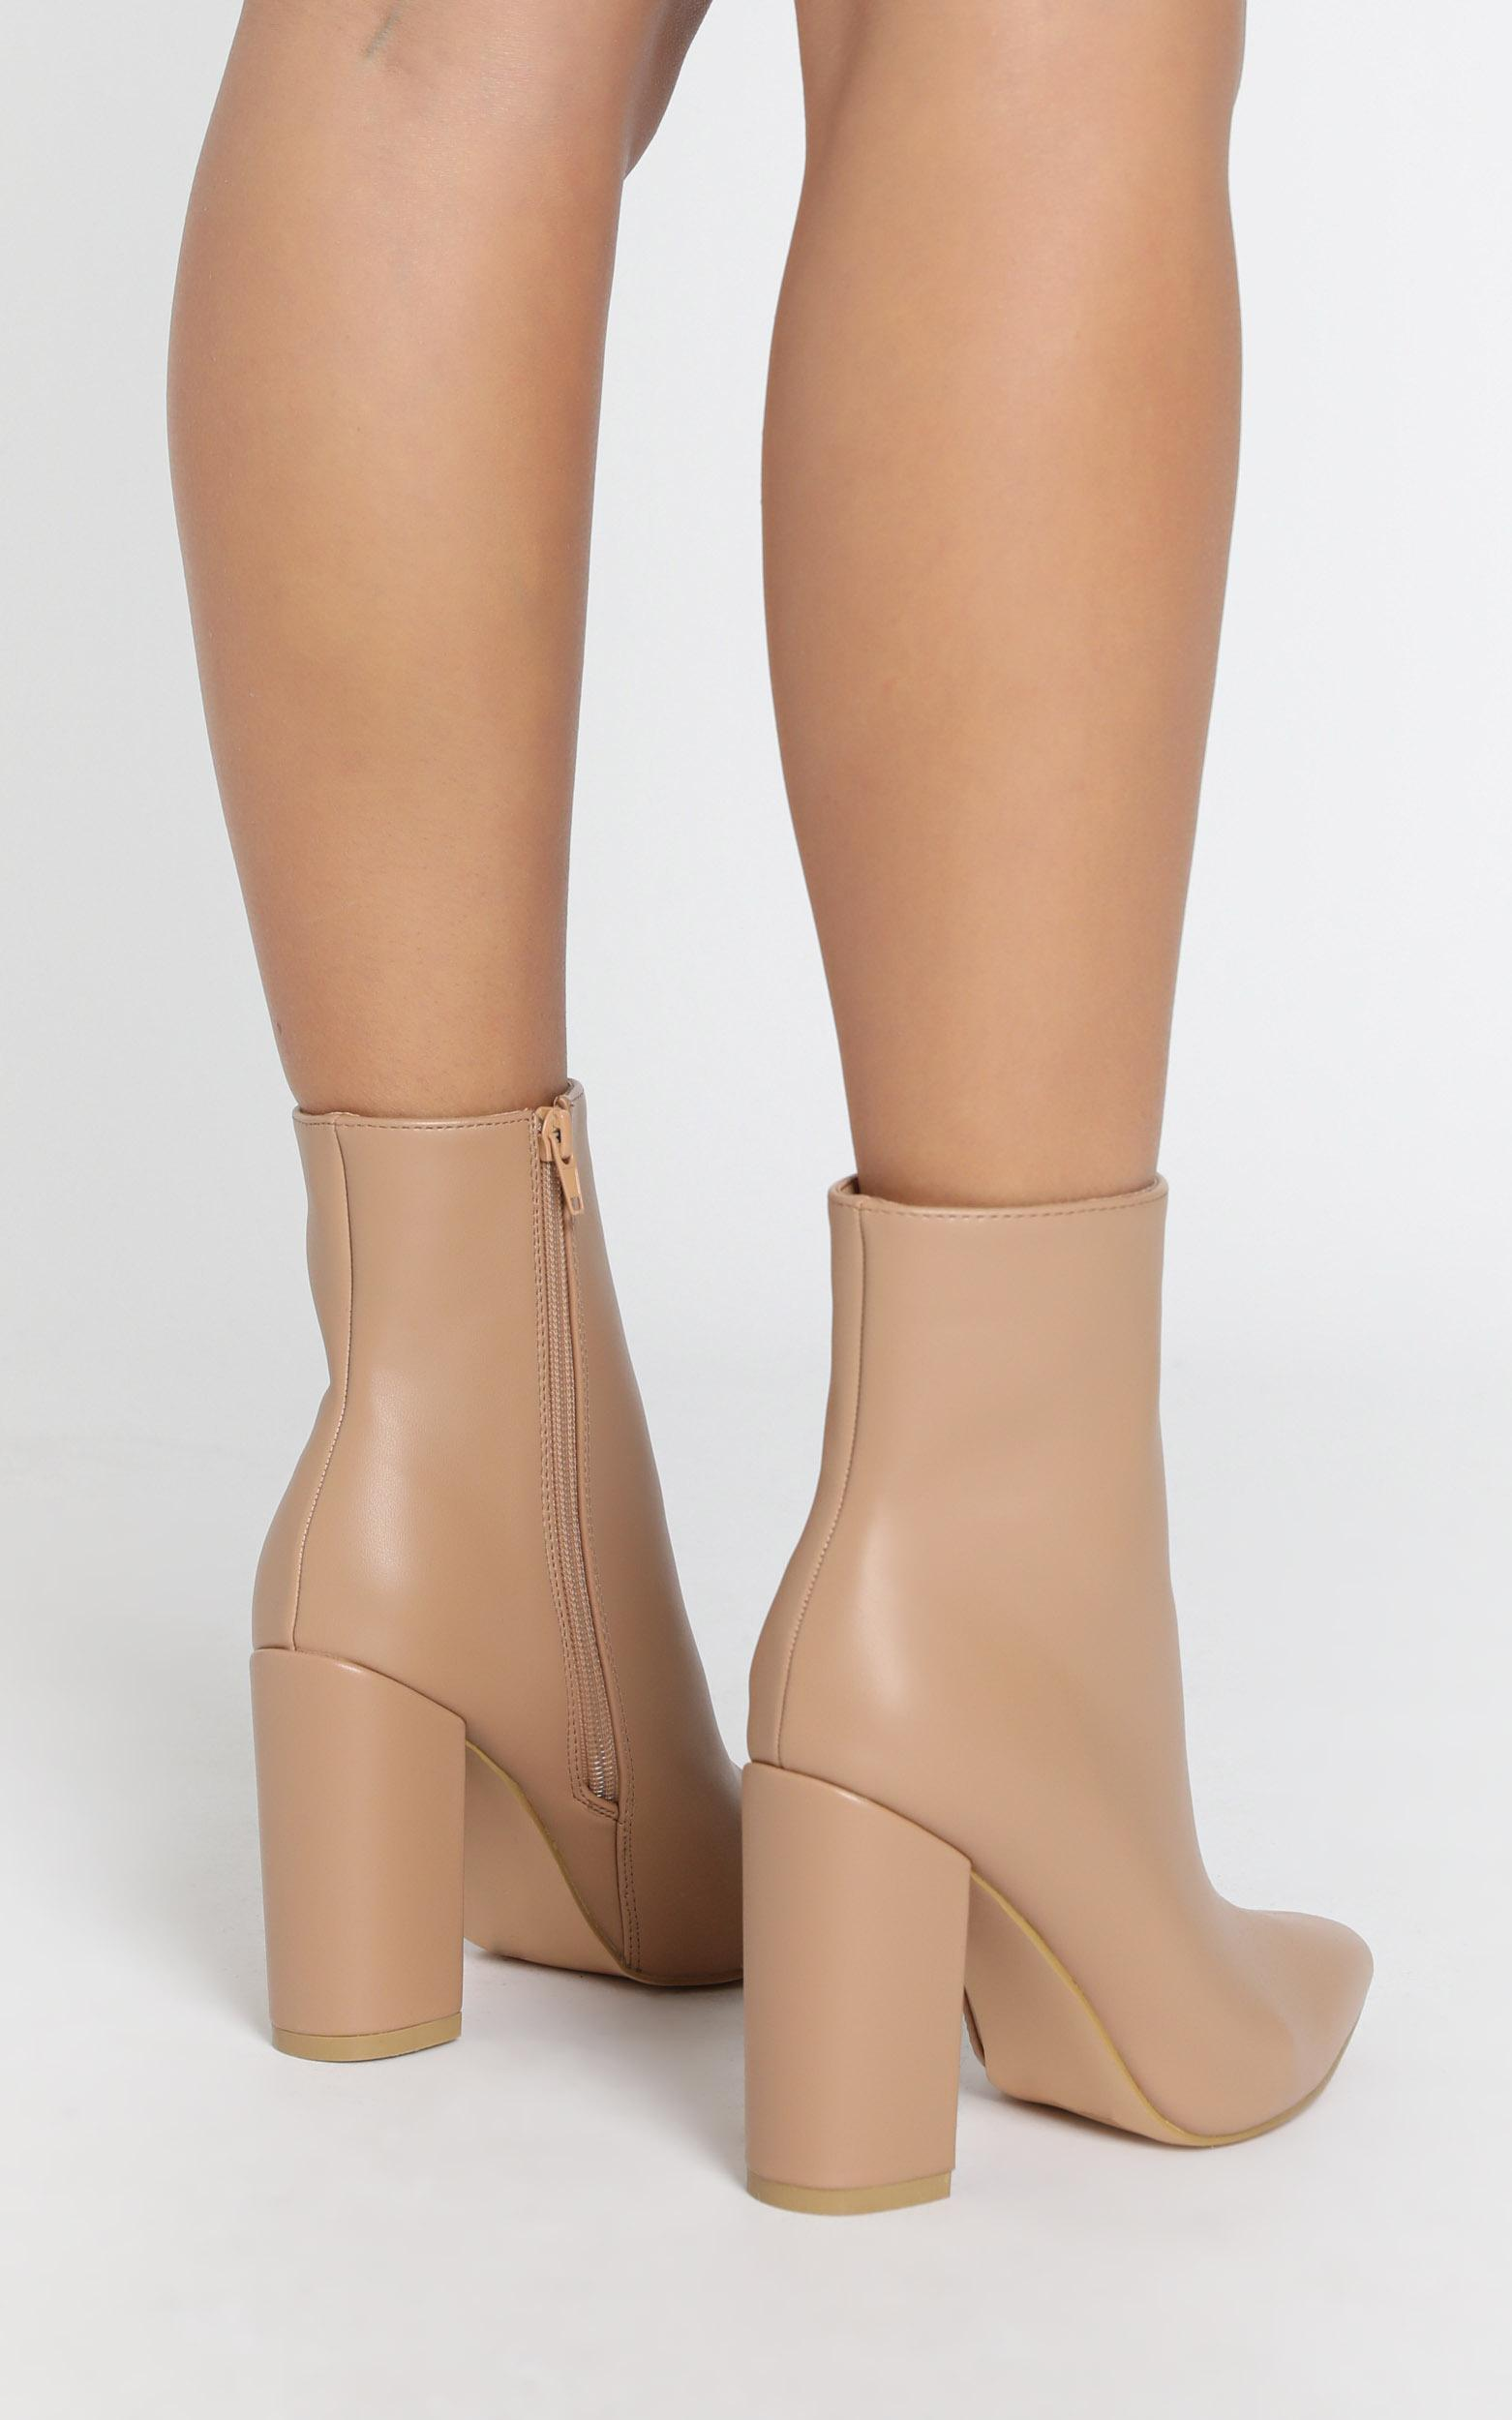 Verali - Dawson Boots in latte smooth - 5, Beige, hi-res image number null